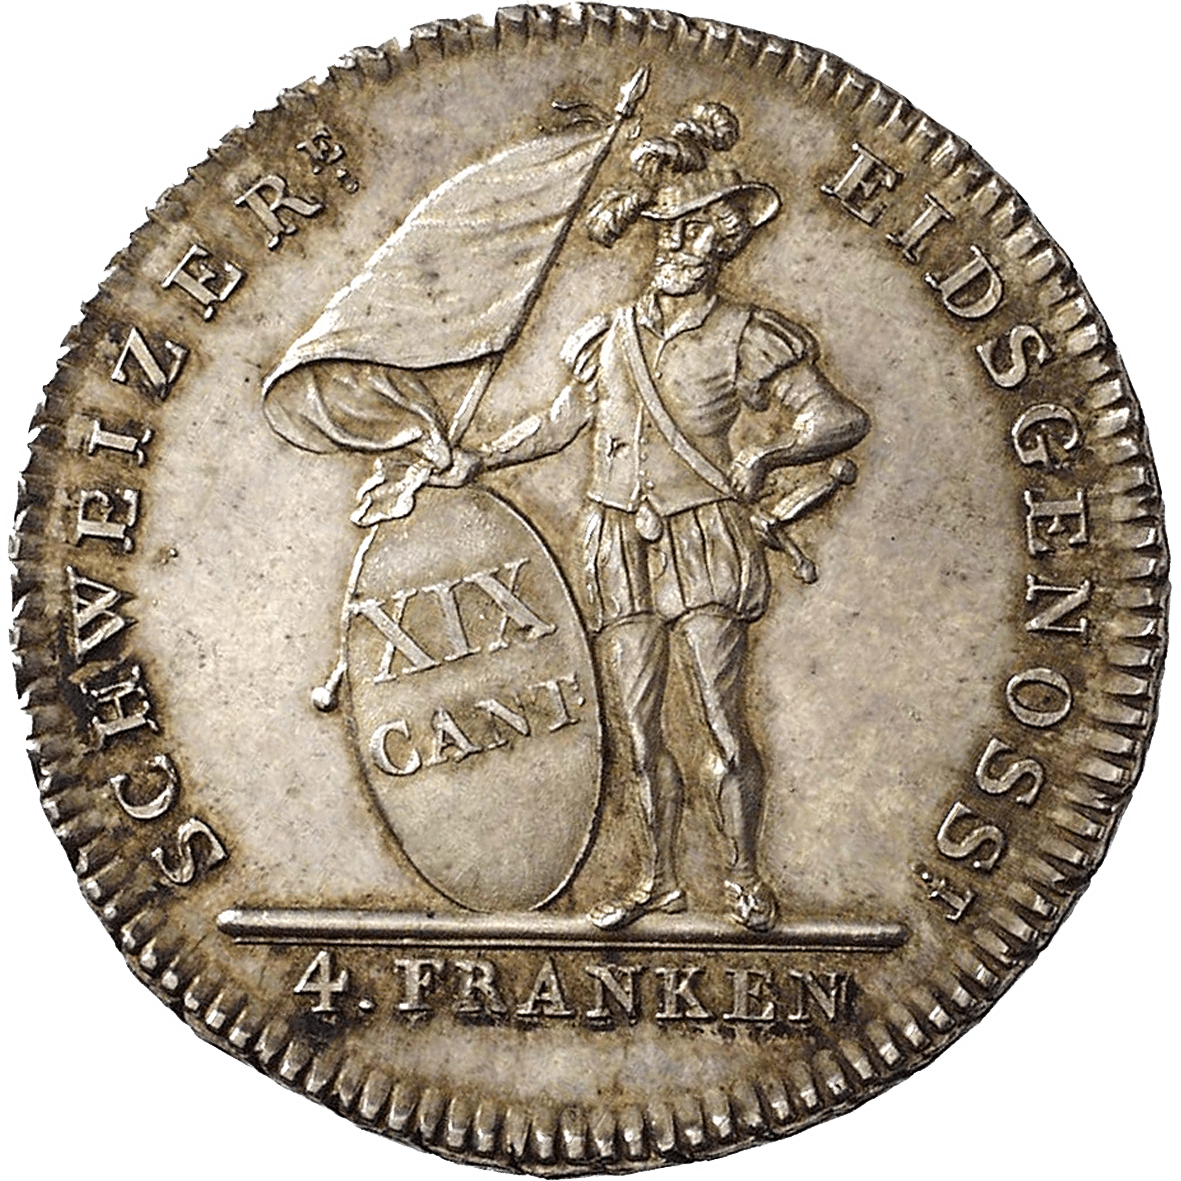 Canton of Solothurn, Time of Mediation, 4 Francs 1813 (reverse)